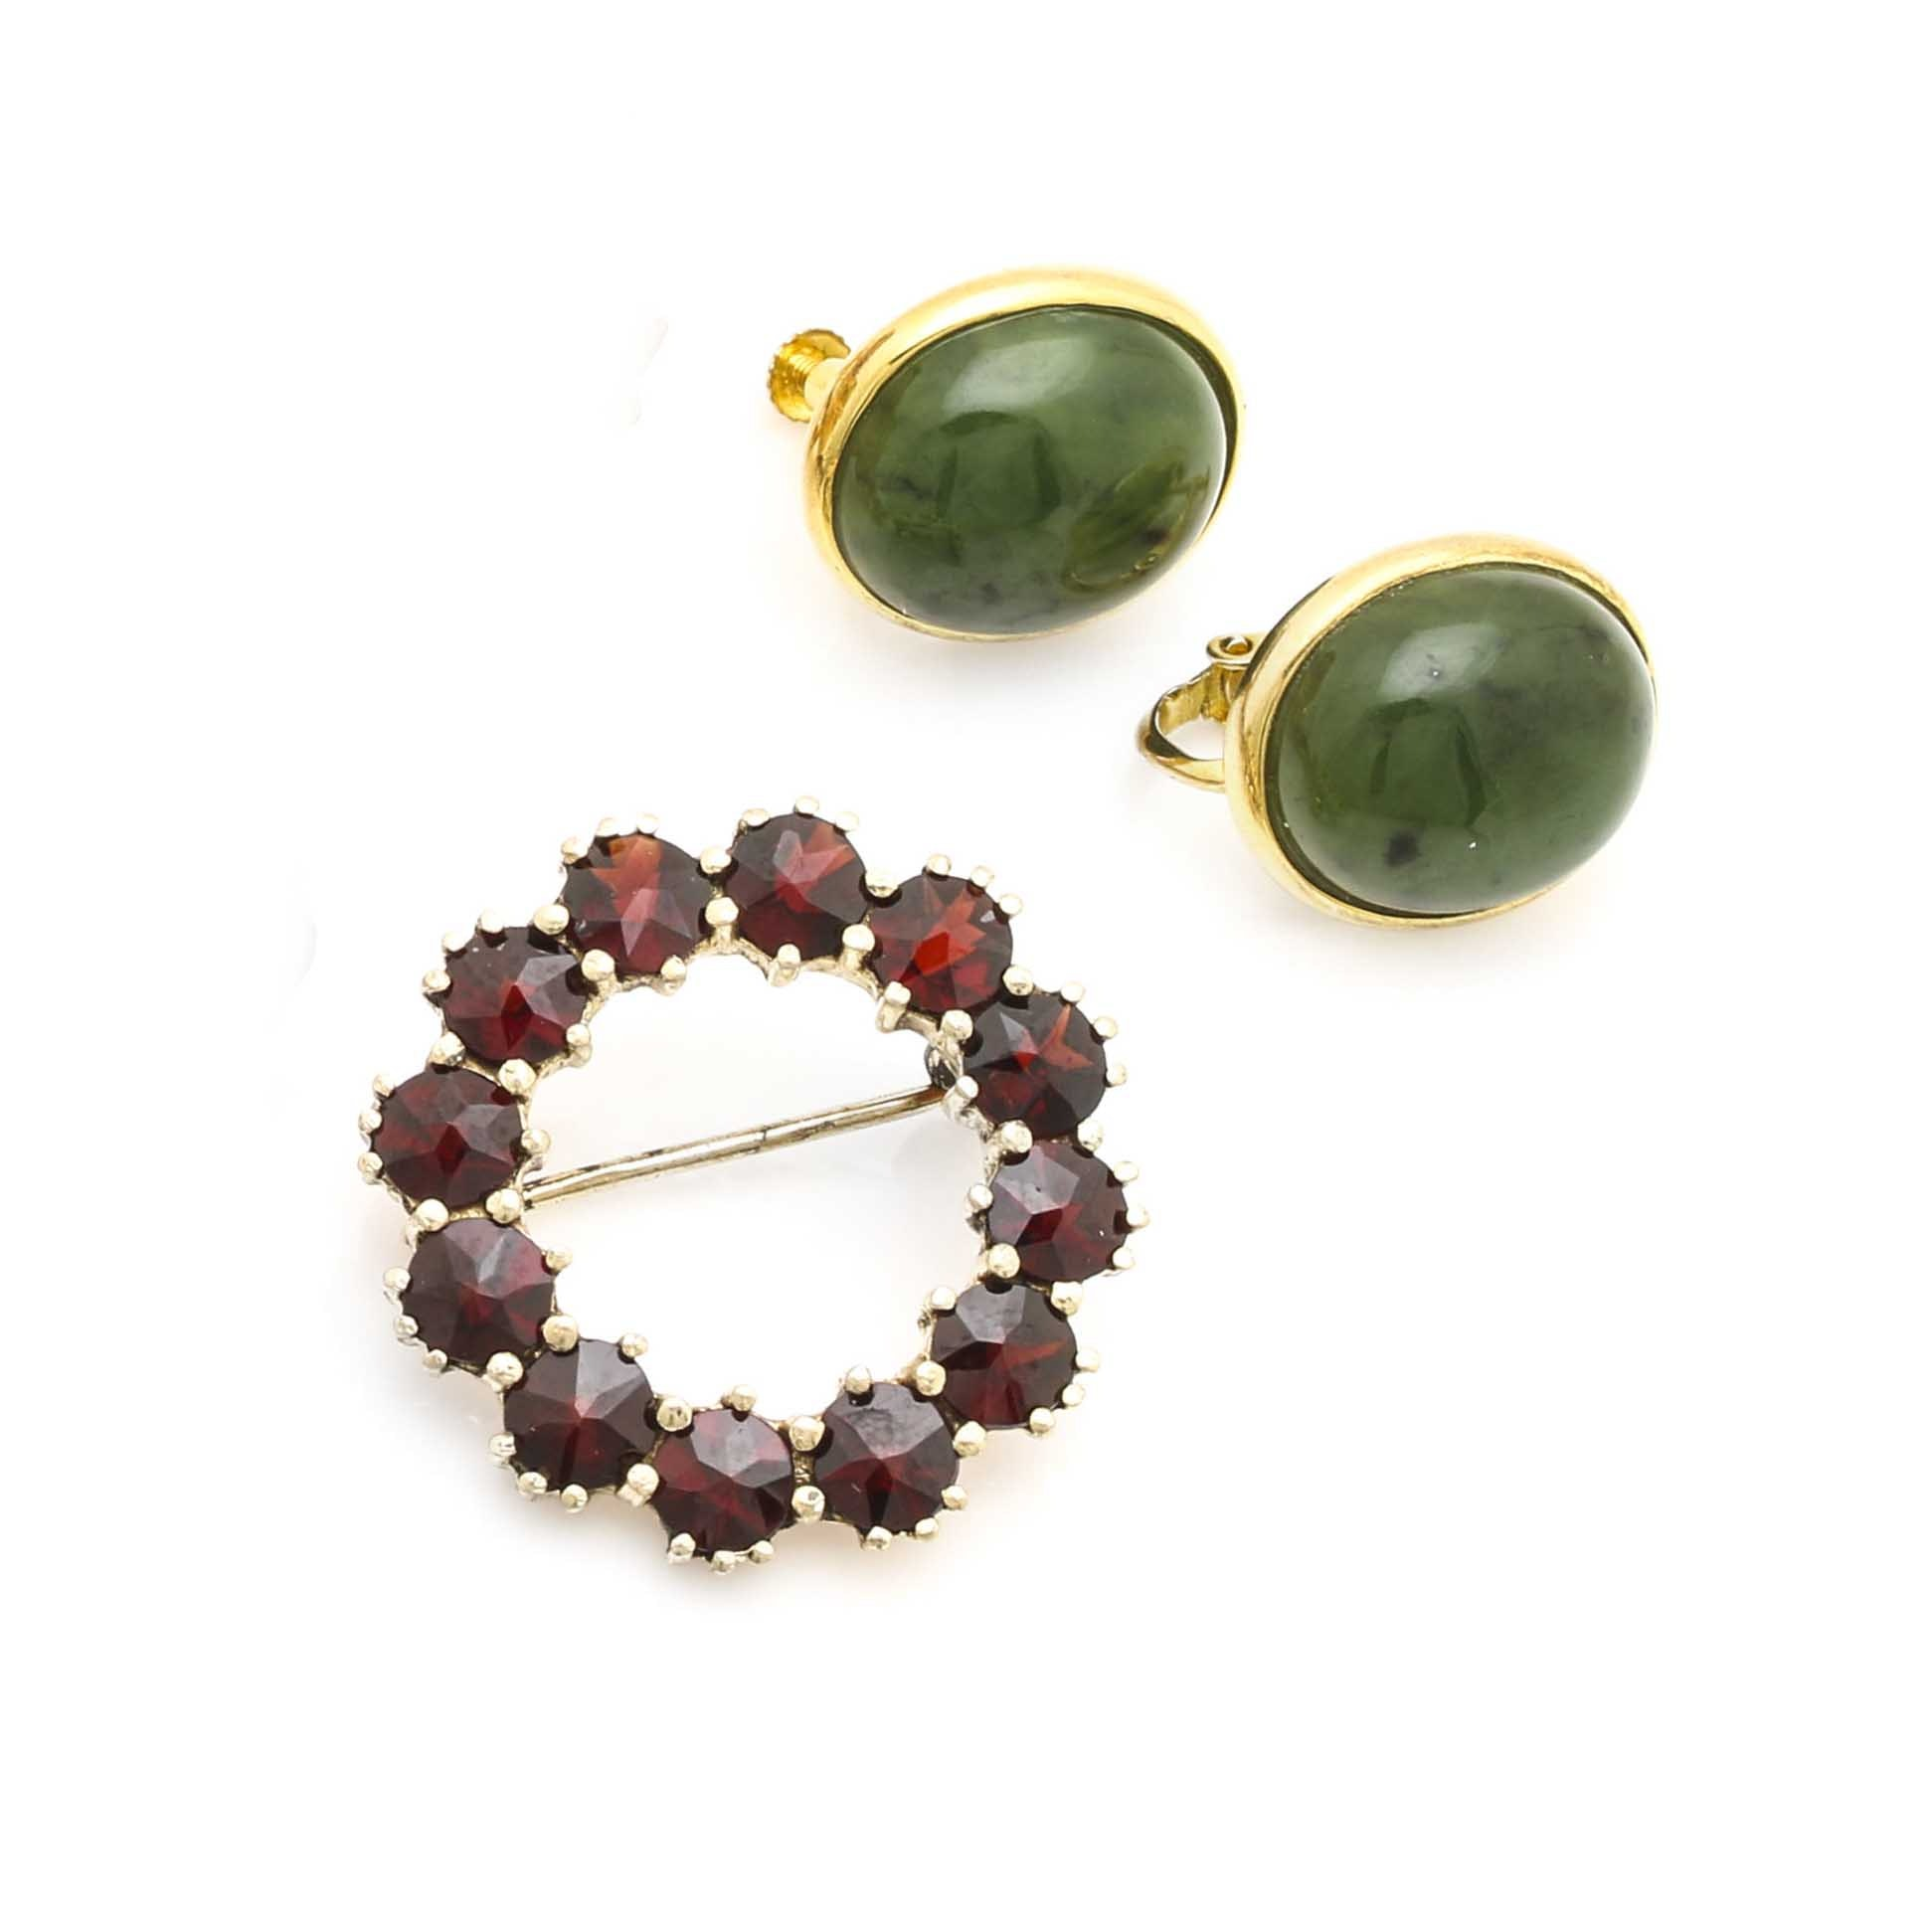 Gold Wash on Sterling Silver Serpentine Earrings and Garnet Brooch